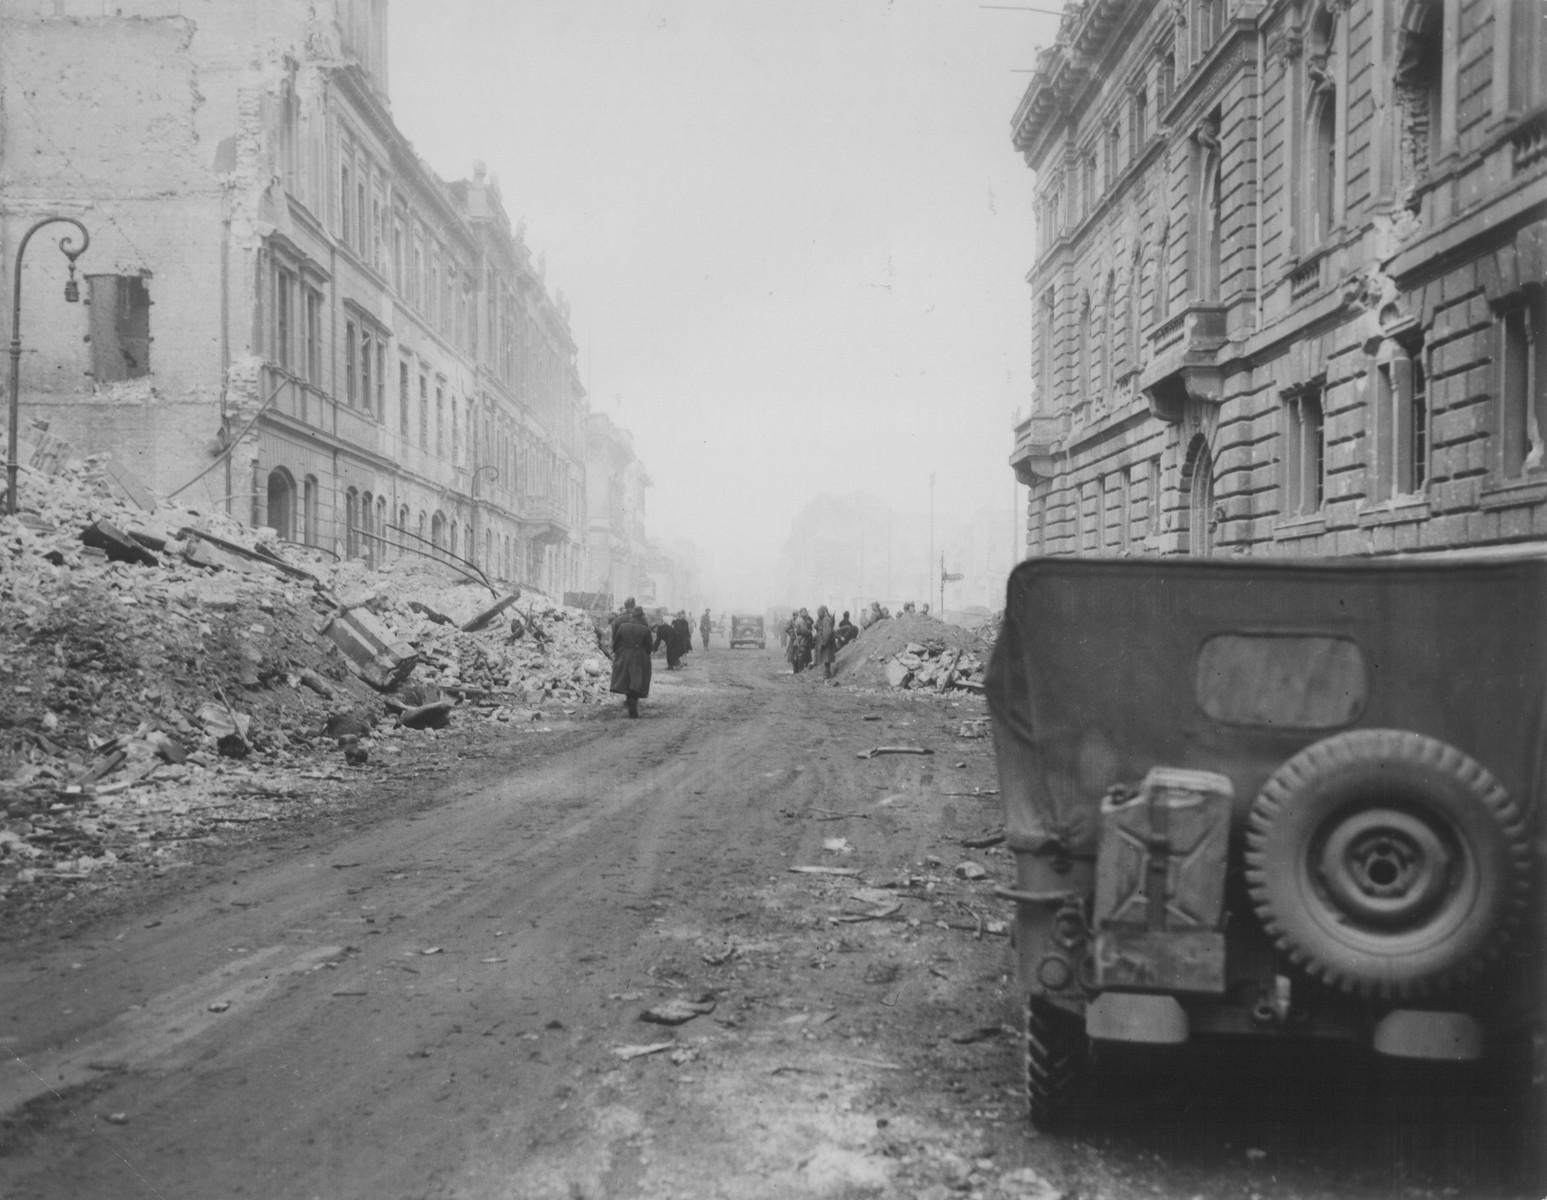 Allied troops walk along a rubble-strewn street in a German city at the end of World War II.